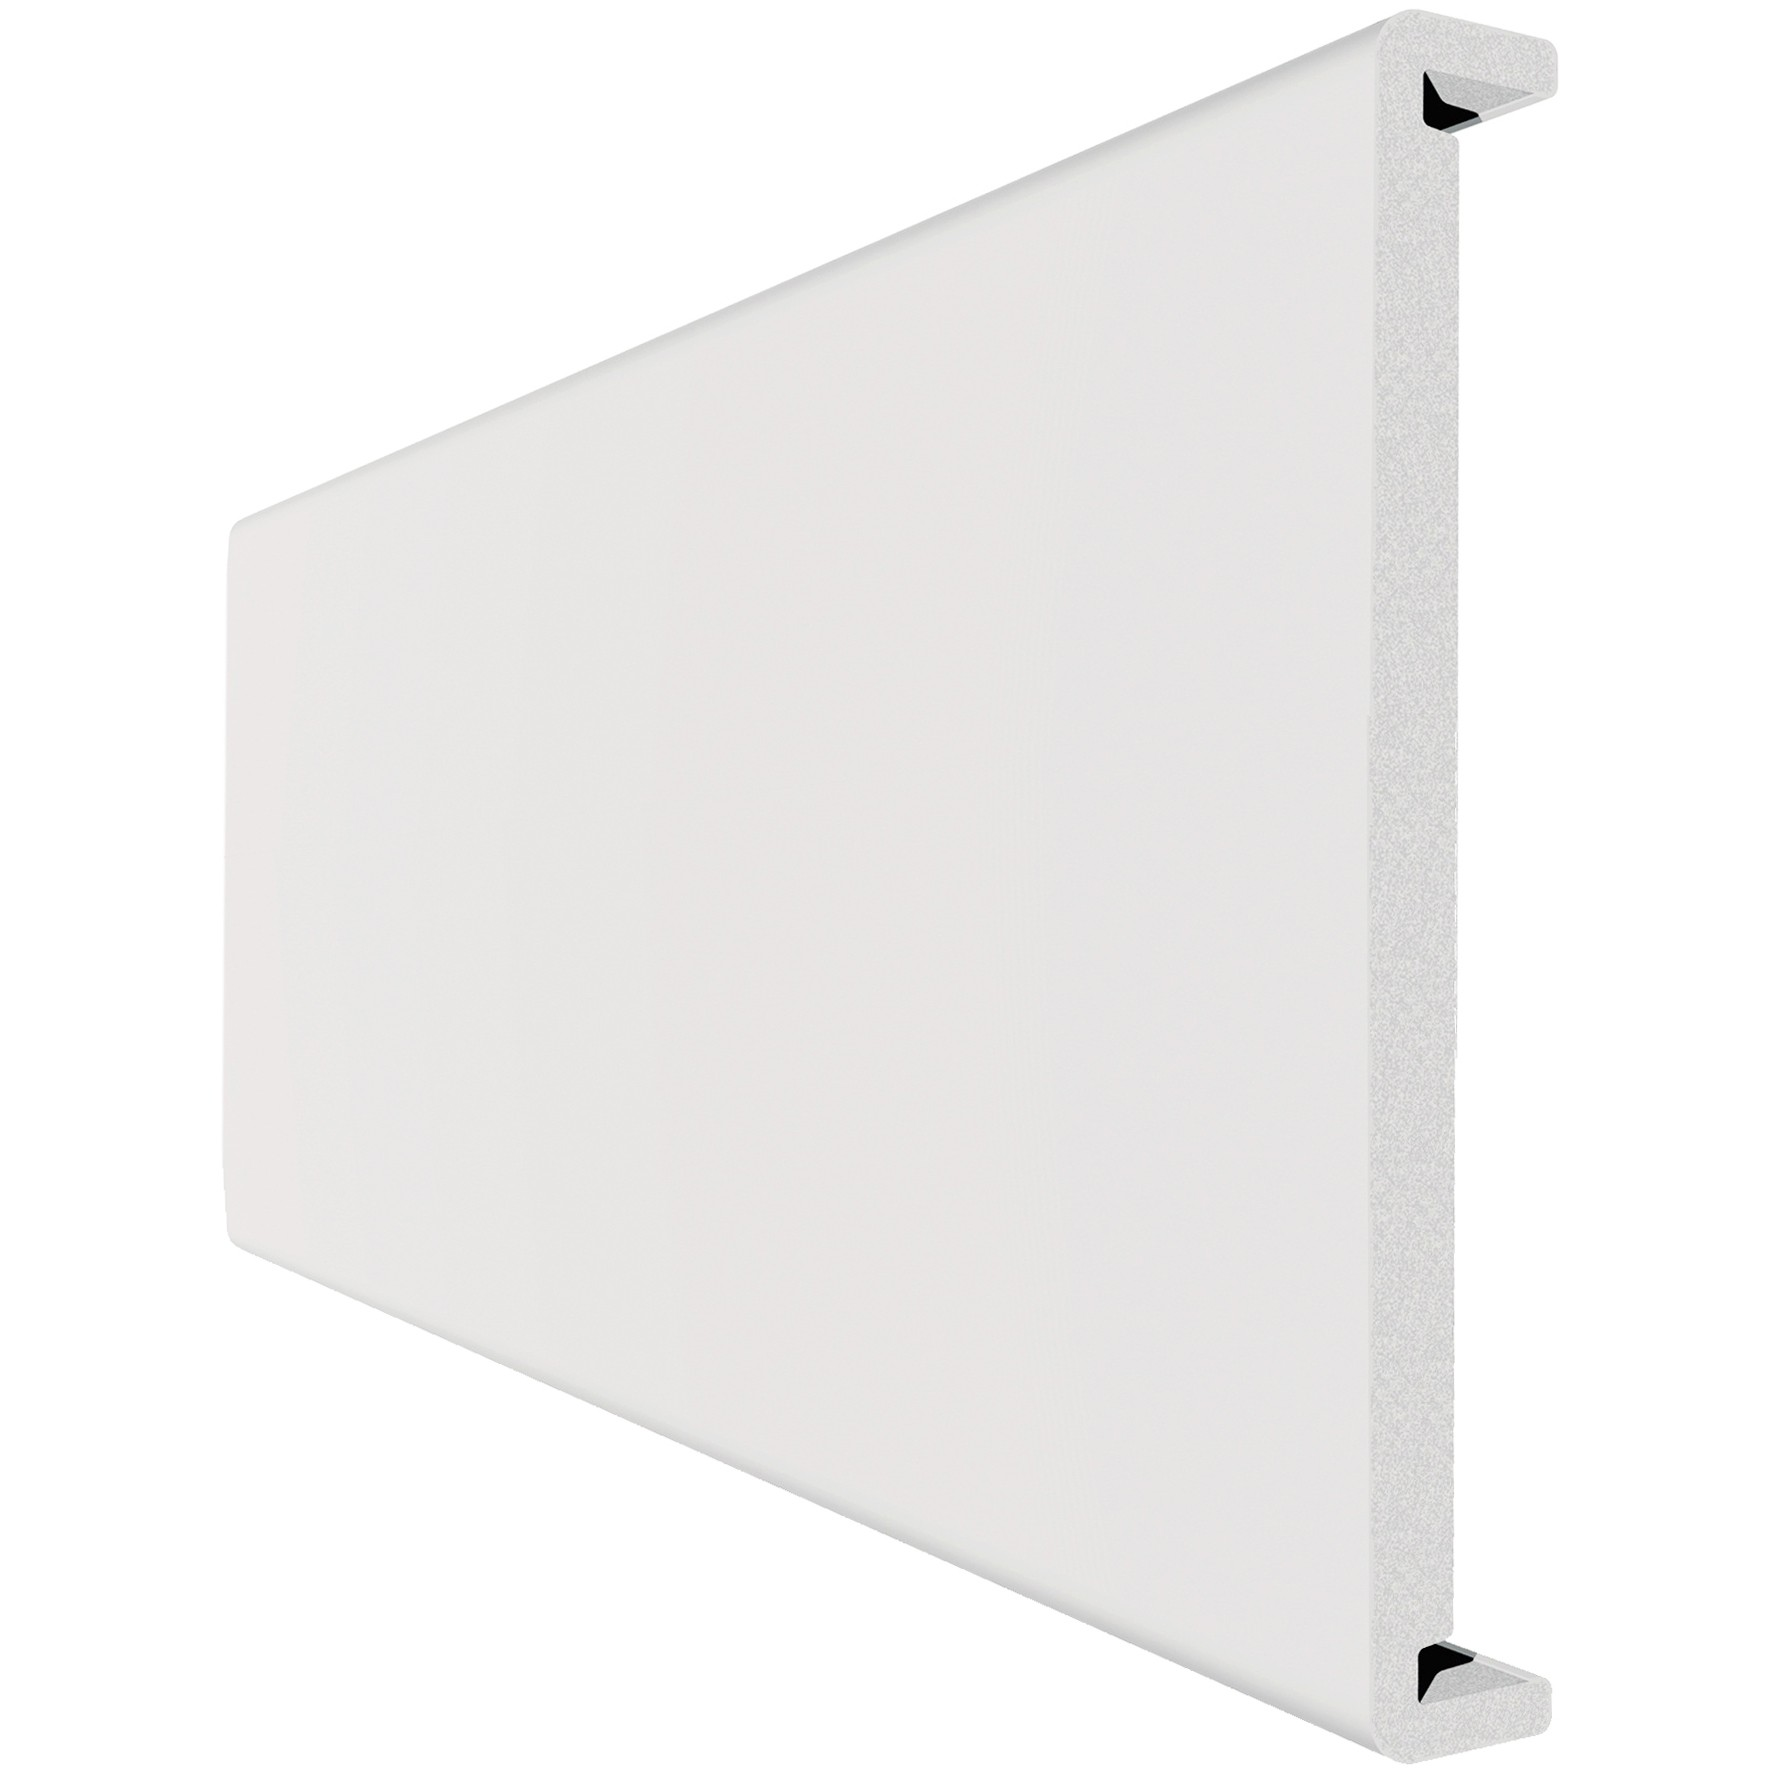 Freefoam Magnum Square Leg 18mm Double Sided Fascia Board - White, 410mm, 2.5 metre